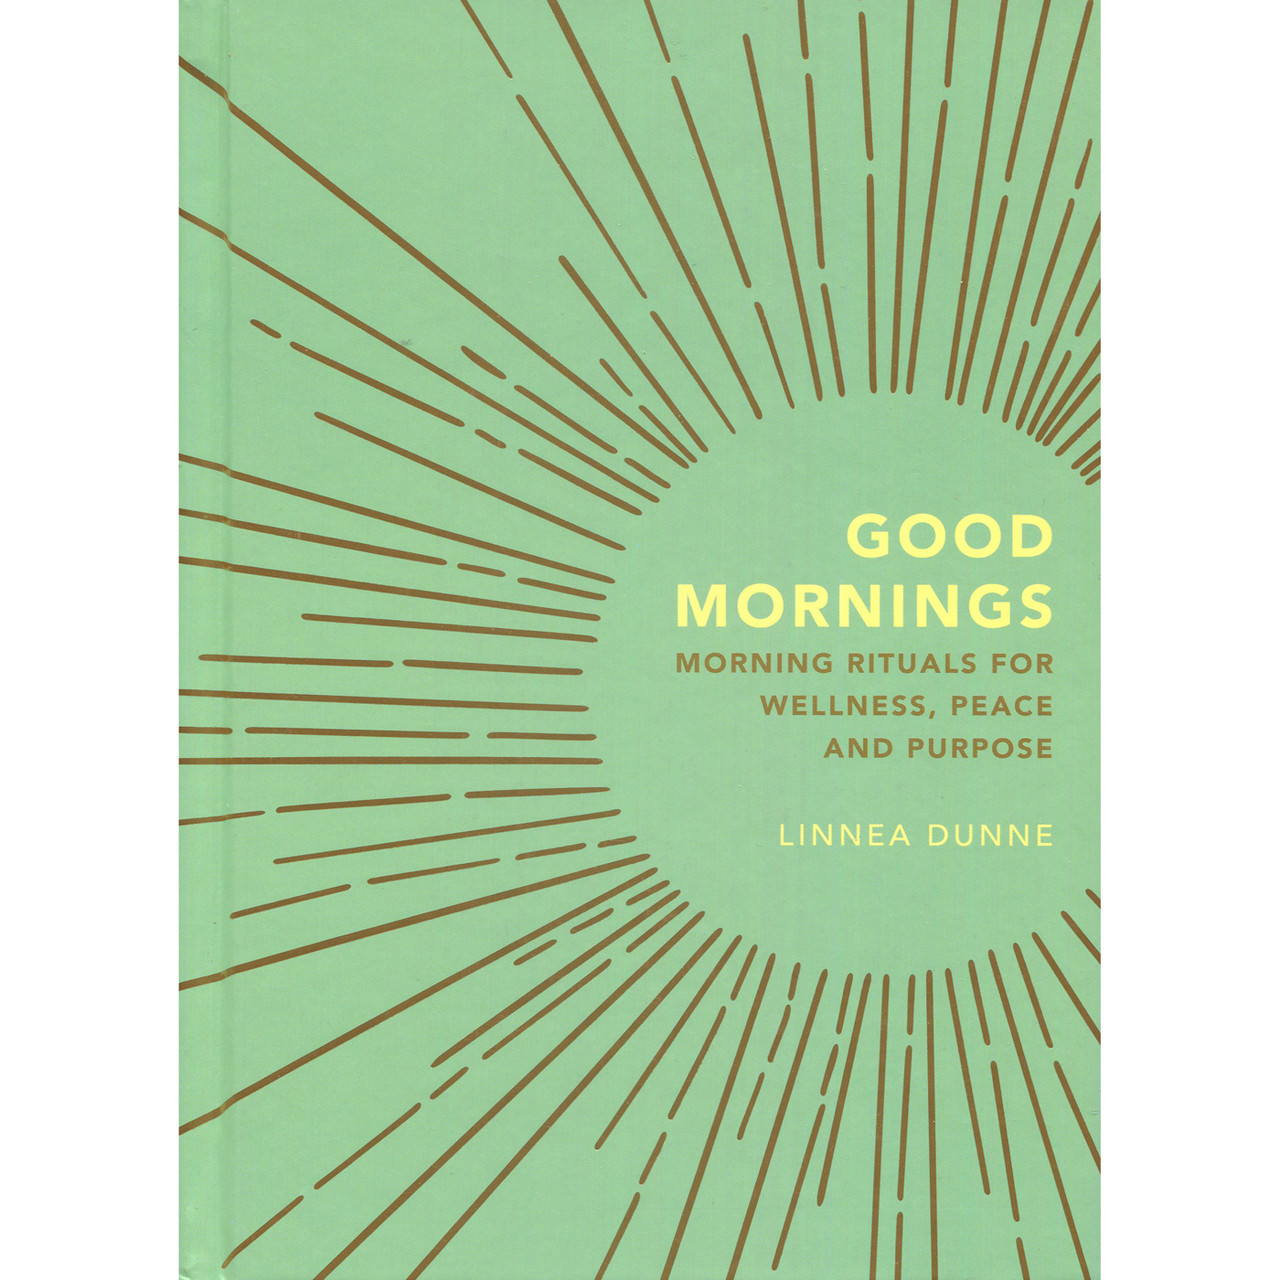 Good Mornings by Linnea Dunne